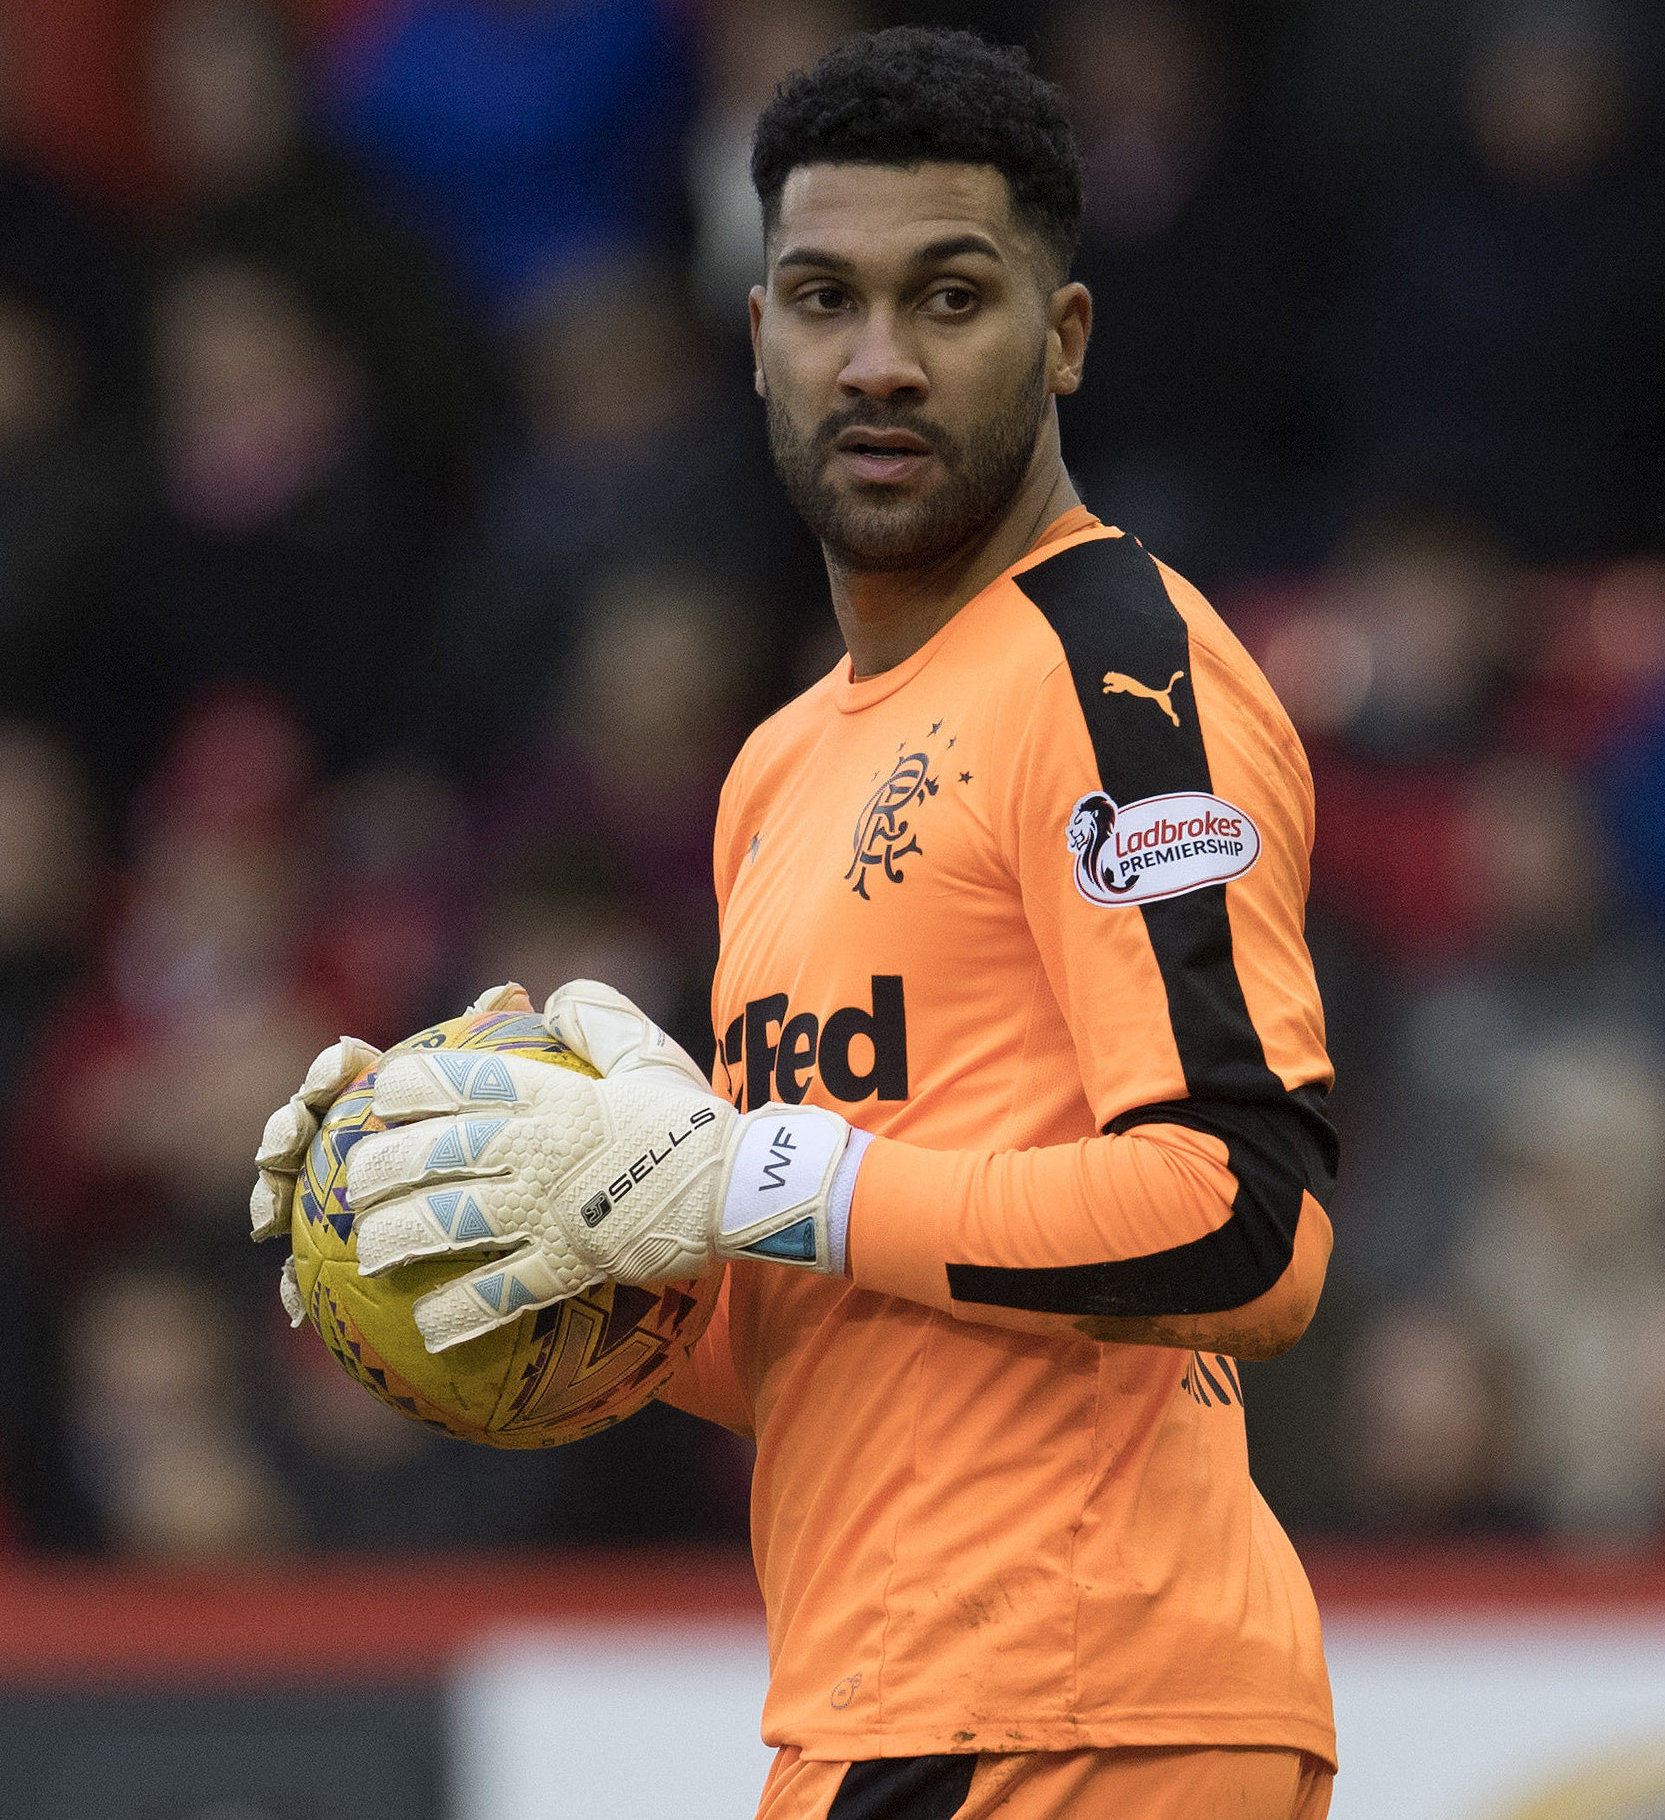 Wes Foderingham in action for Rangers, for whom he signed from Swindon in 2015.